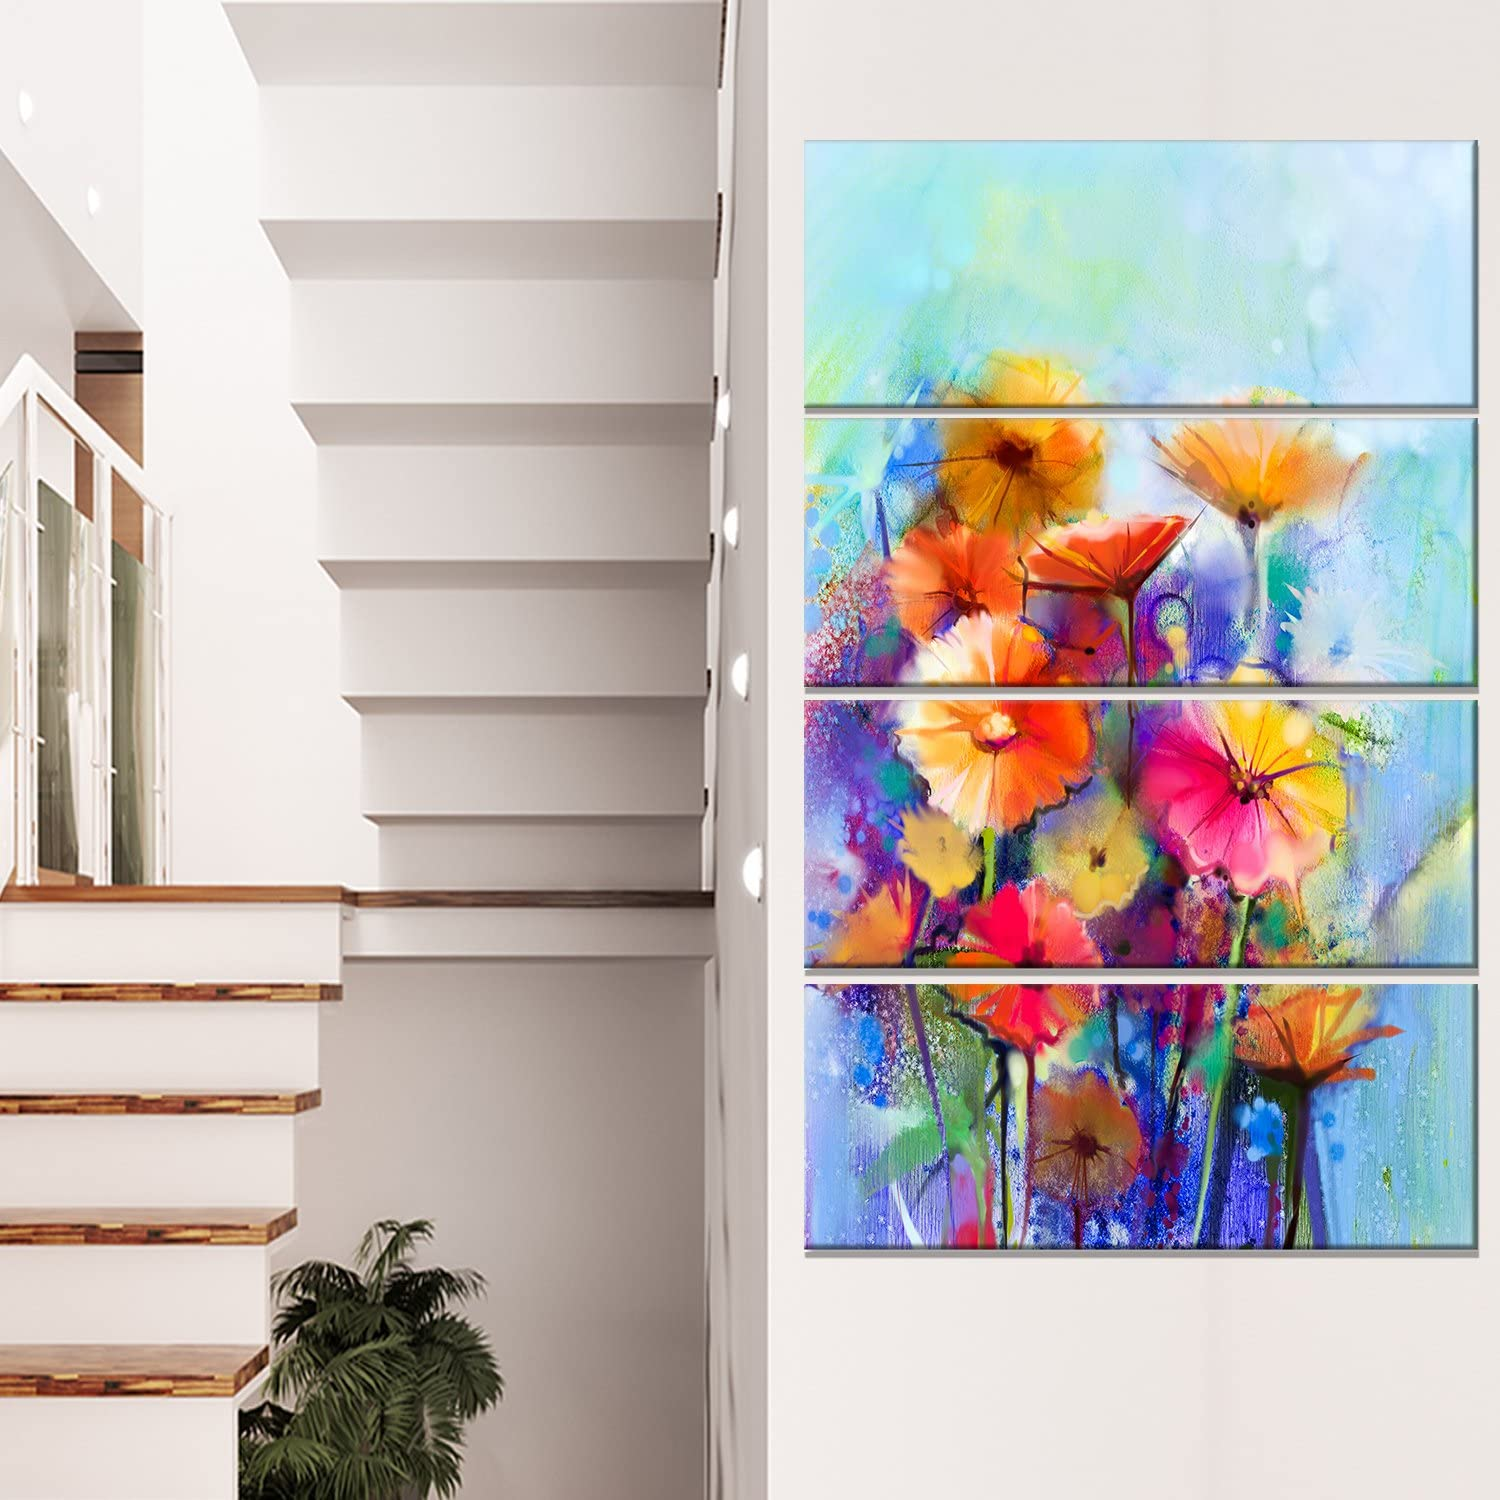 Designart Abstract Watercolor Painting Max 60% OFF Modern Wall OFFicial Art Floral Ca